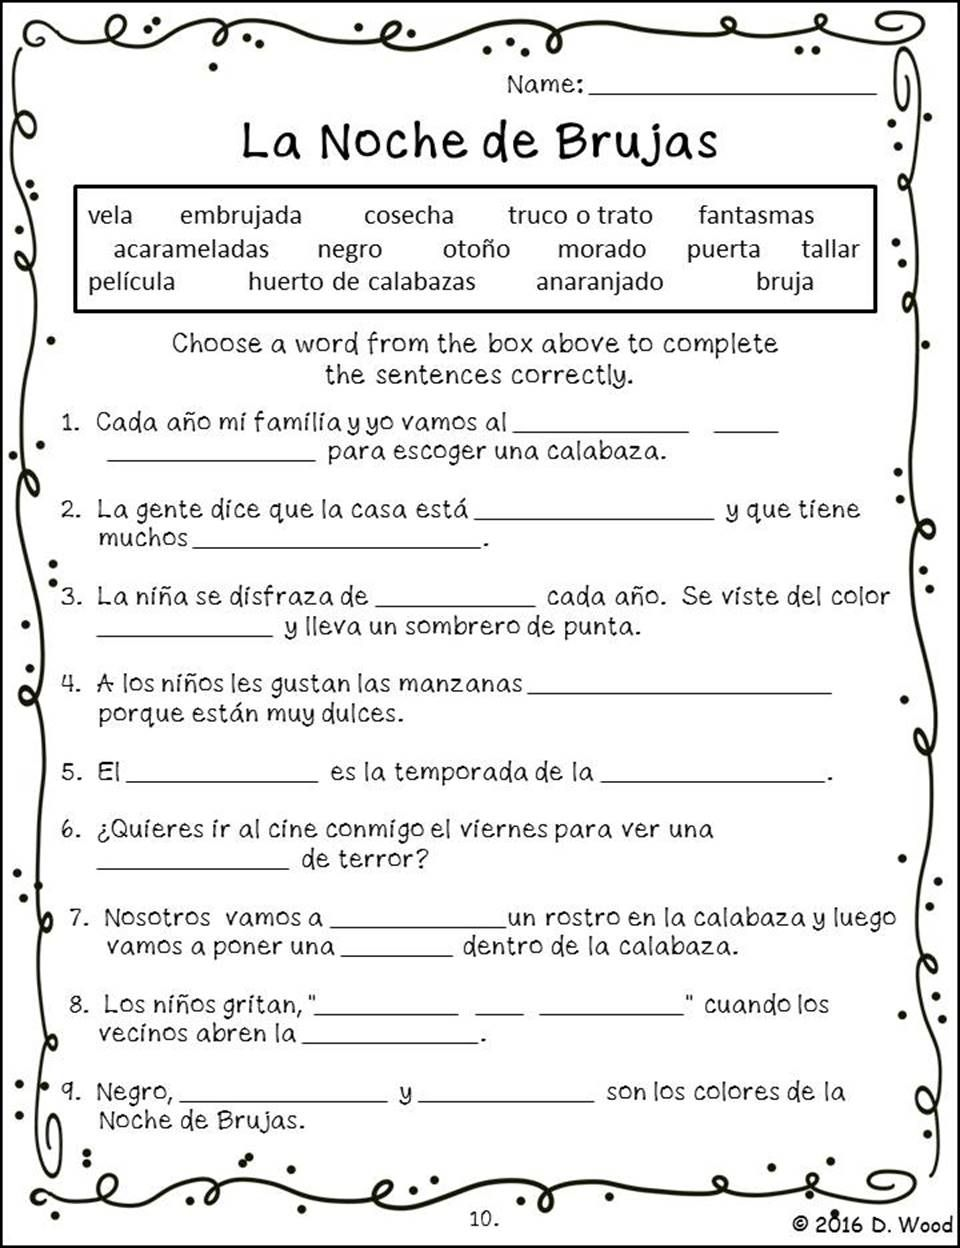 Workbooks teach english to spanish speakers worksheets : Halloween Spanish (La Noche de Brujas) Bilingual Reading | English ...